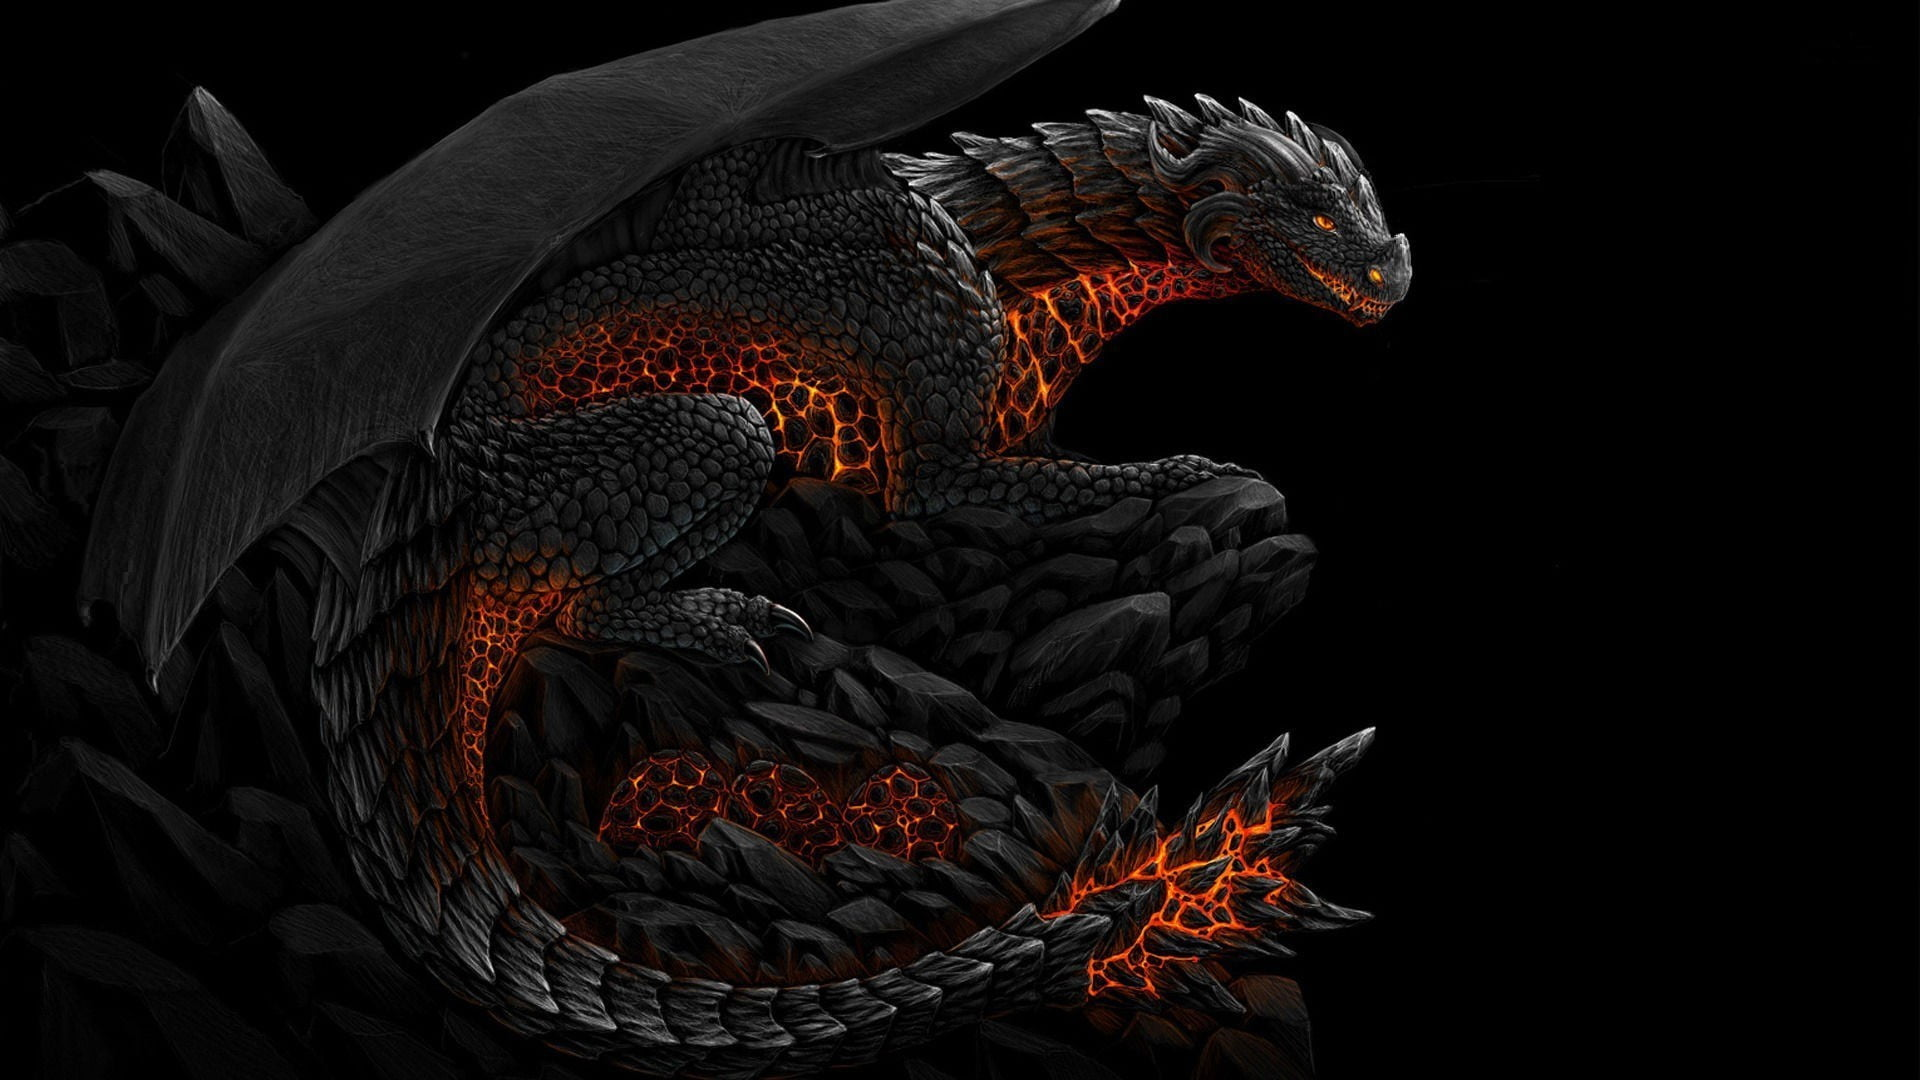 Red Dragons Wallpapers Posted By Ryan Anderson